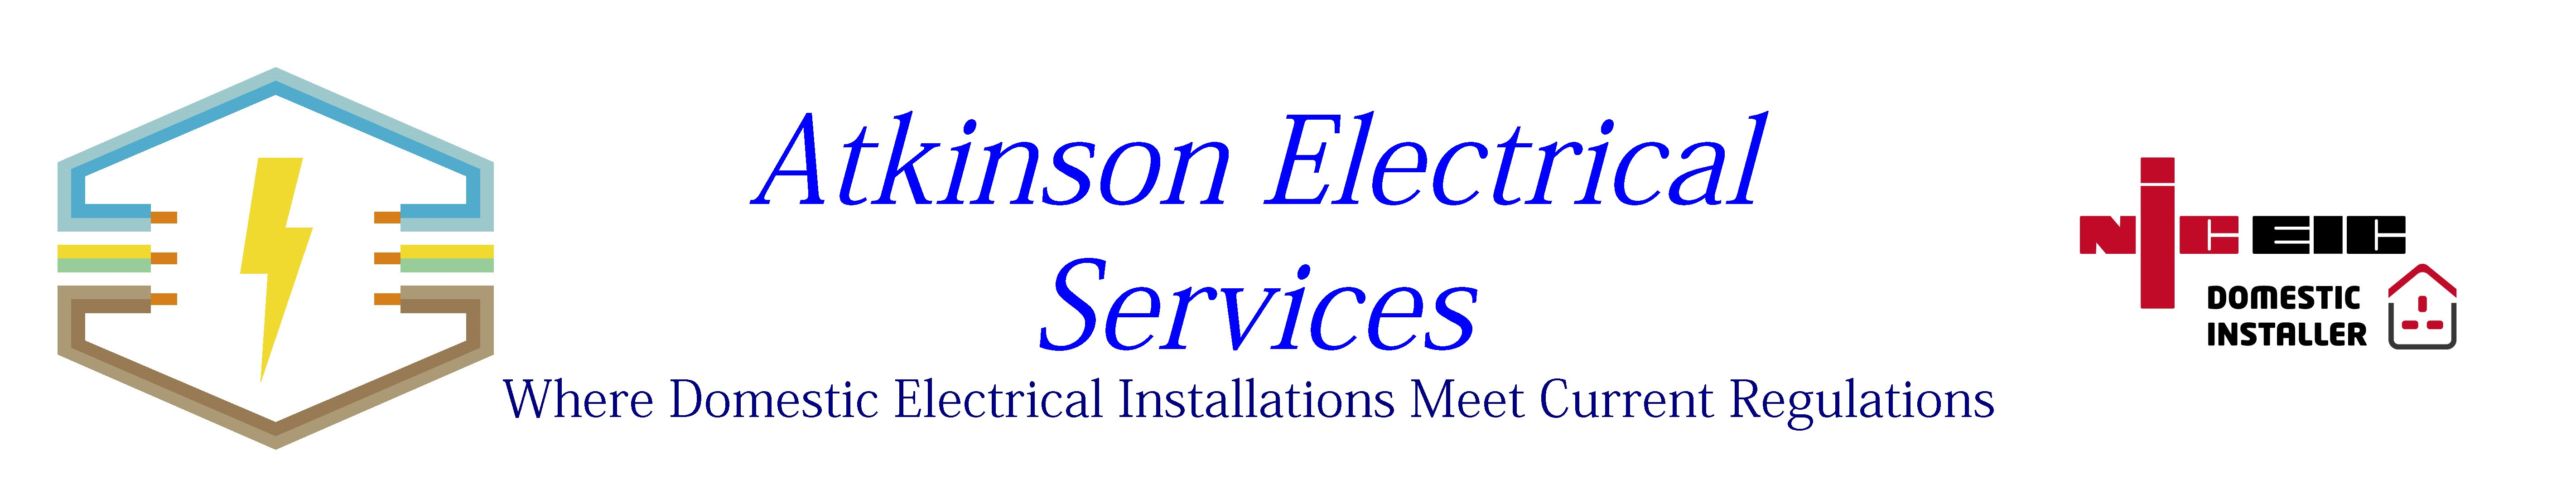 Atkinson Electrical Services